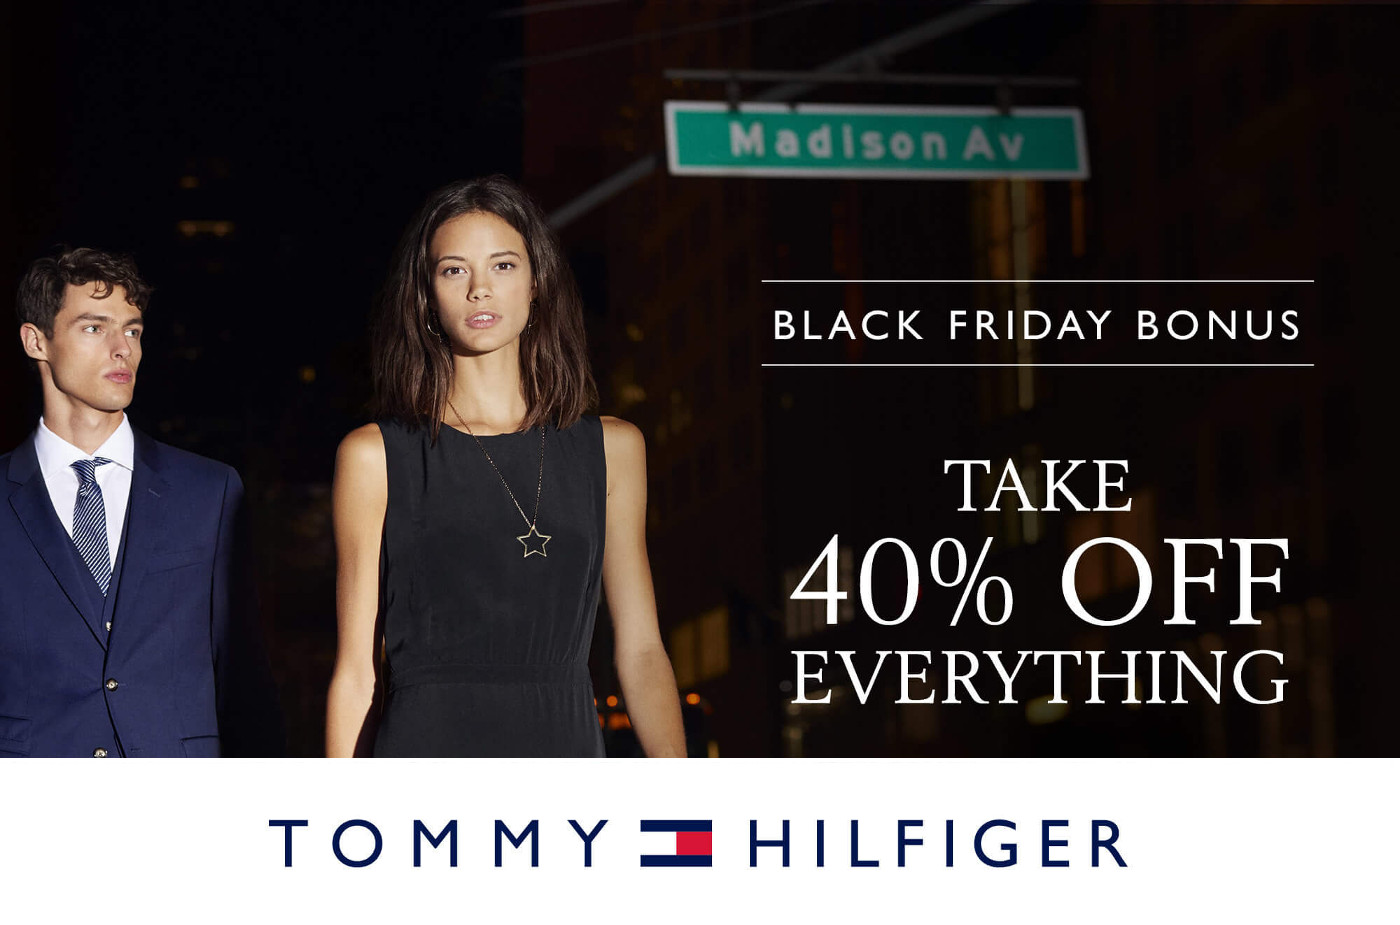 508d28892 On and around Black Friday, get 40% off the Entire Store at Tommy Hilfiger  Canada online and in-store. Plus, present this Tommy Hilfiger coupon offer  ...